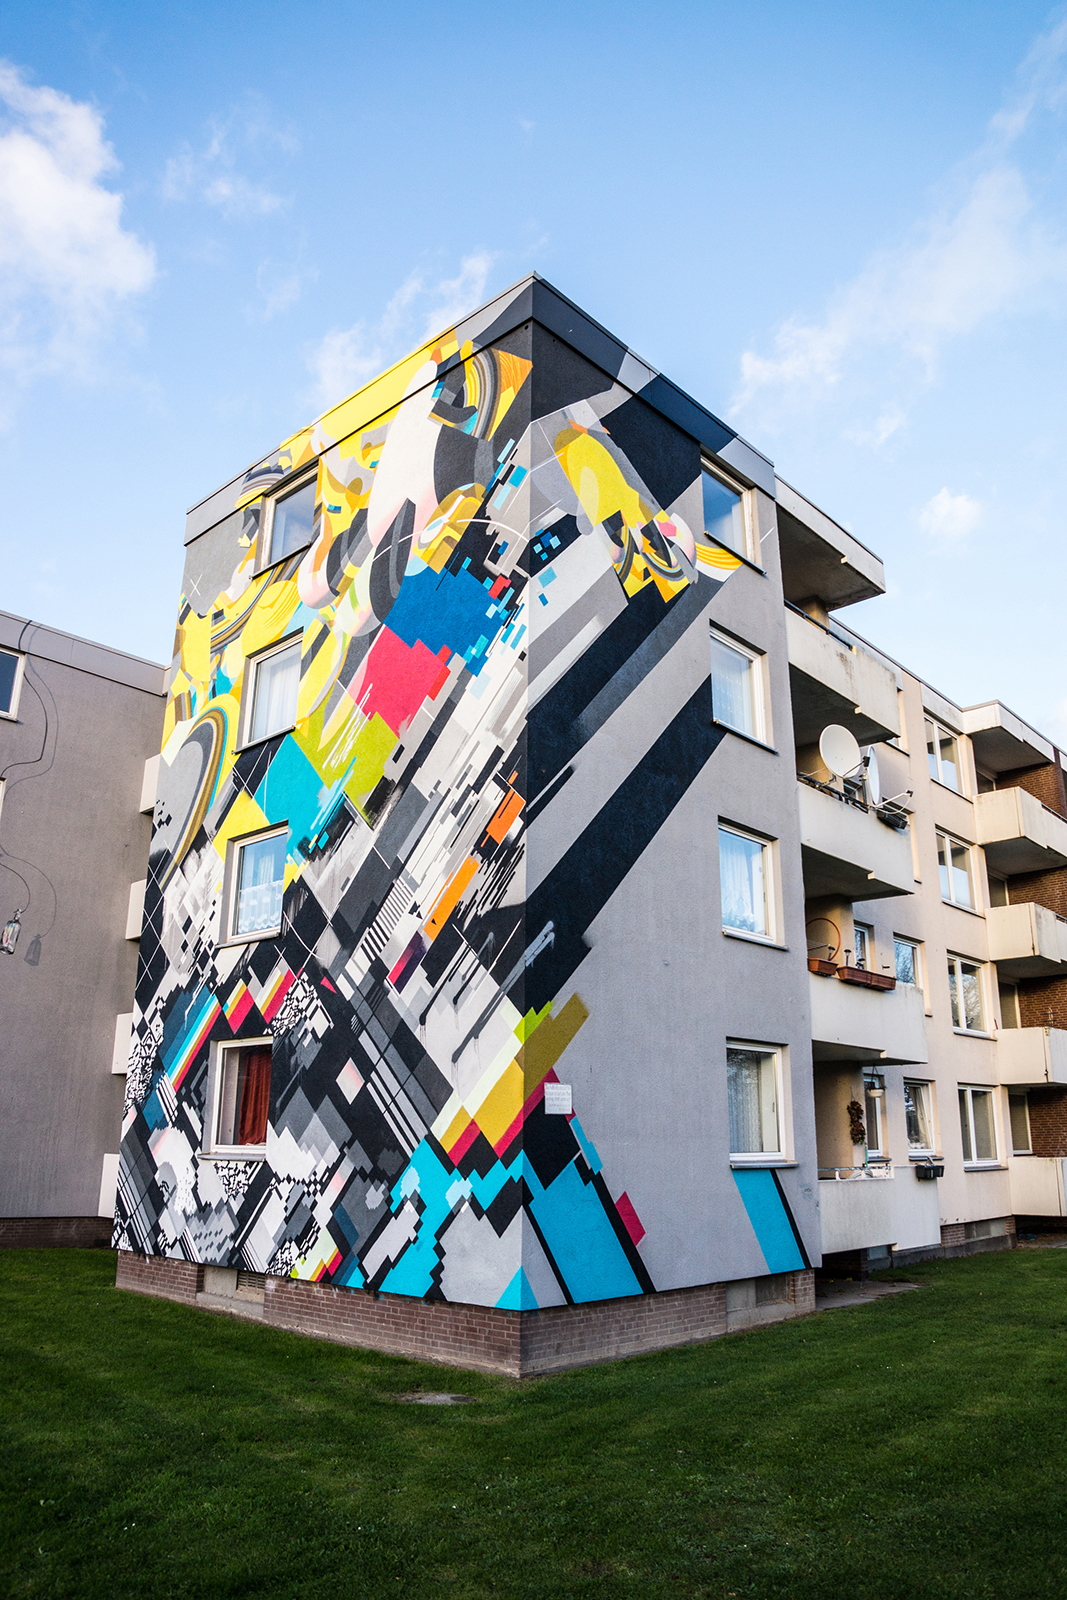 satone-roid-x-wow123-new-mural-in-bremen-06